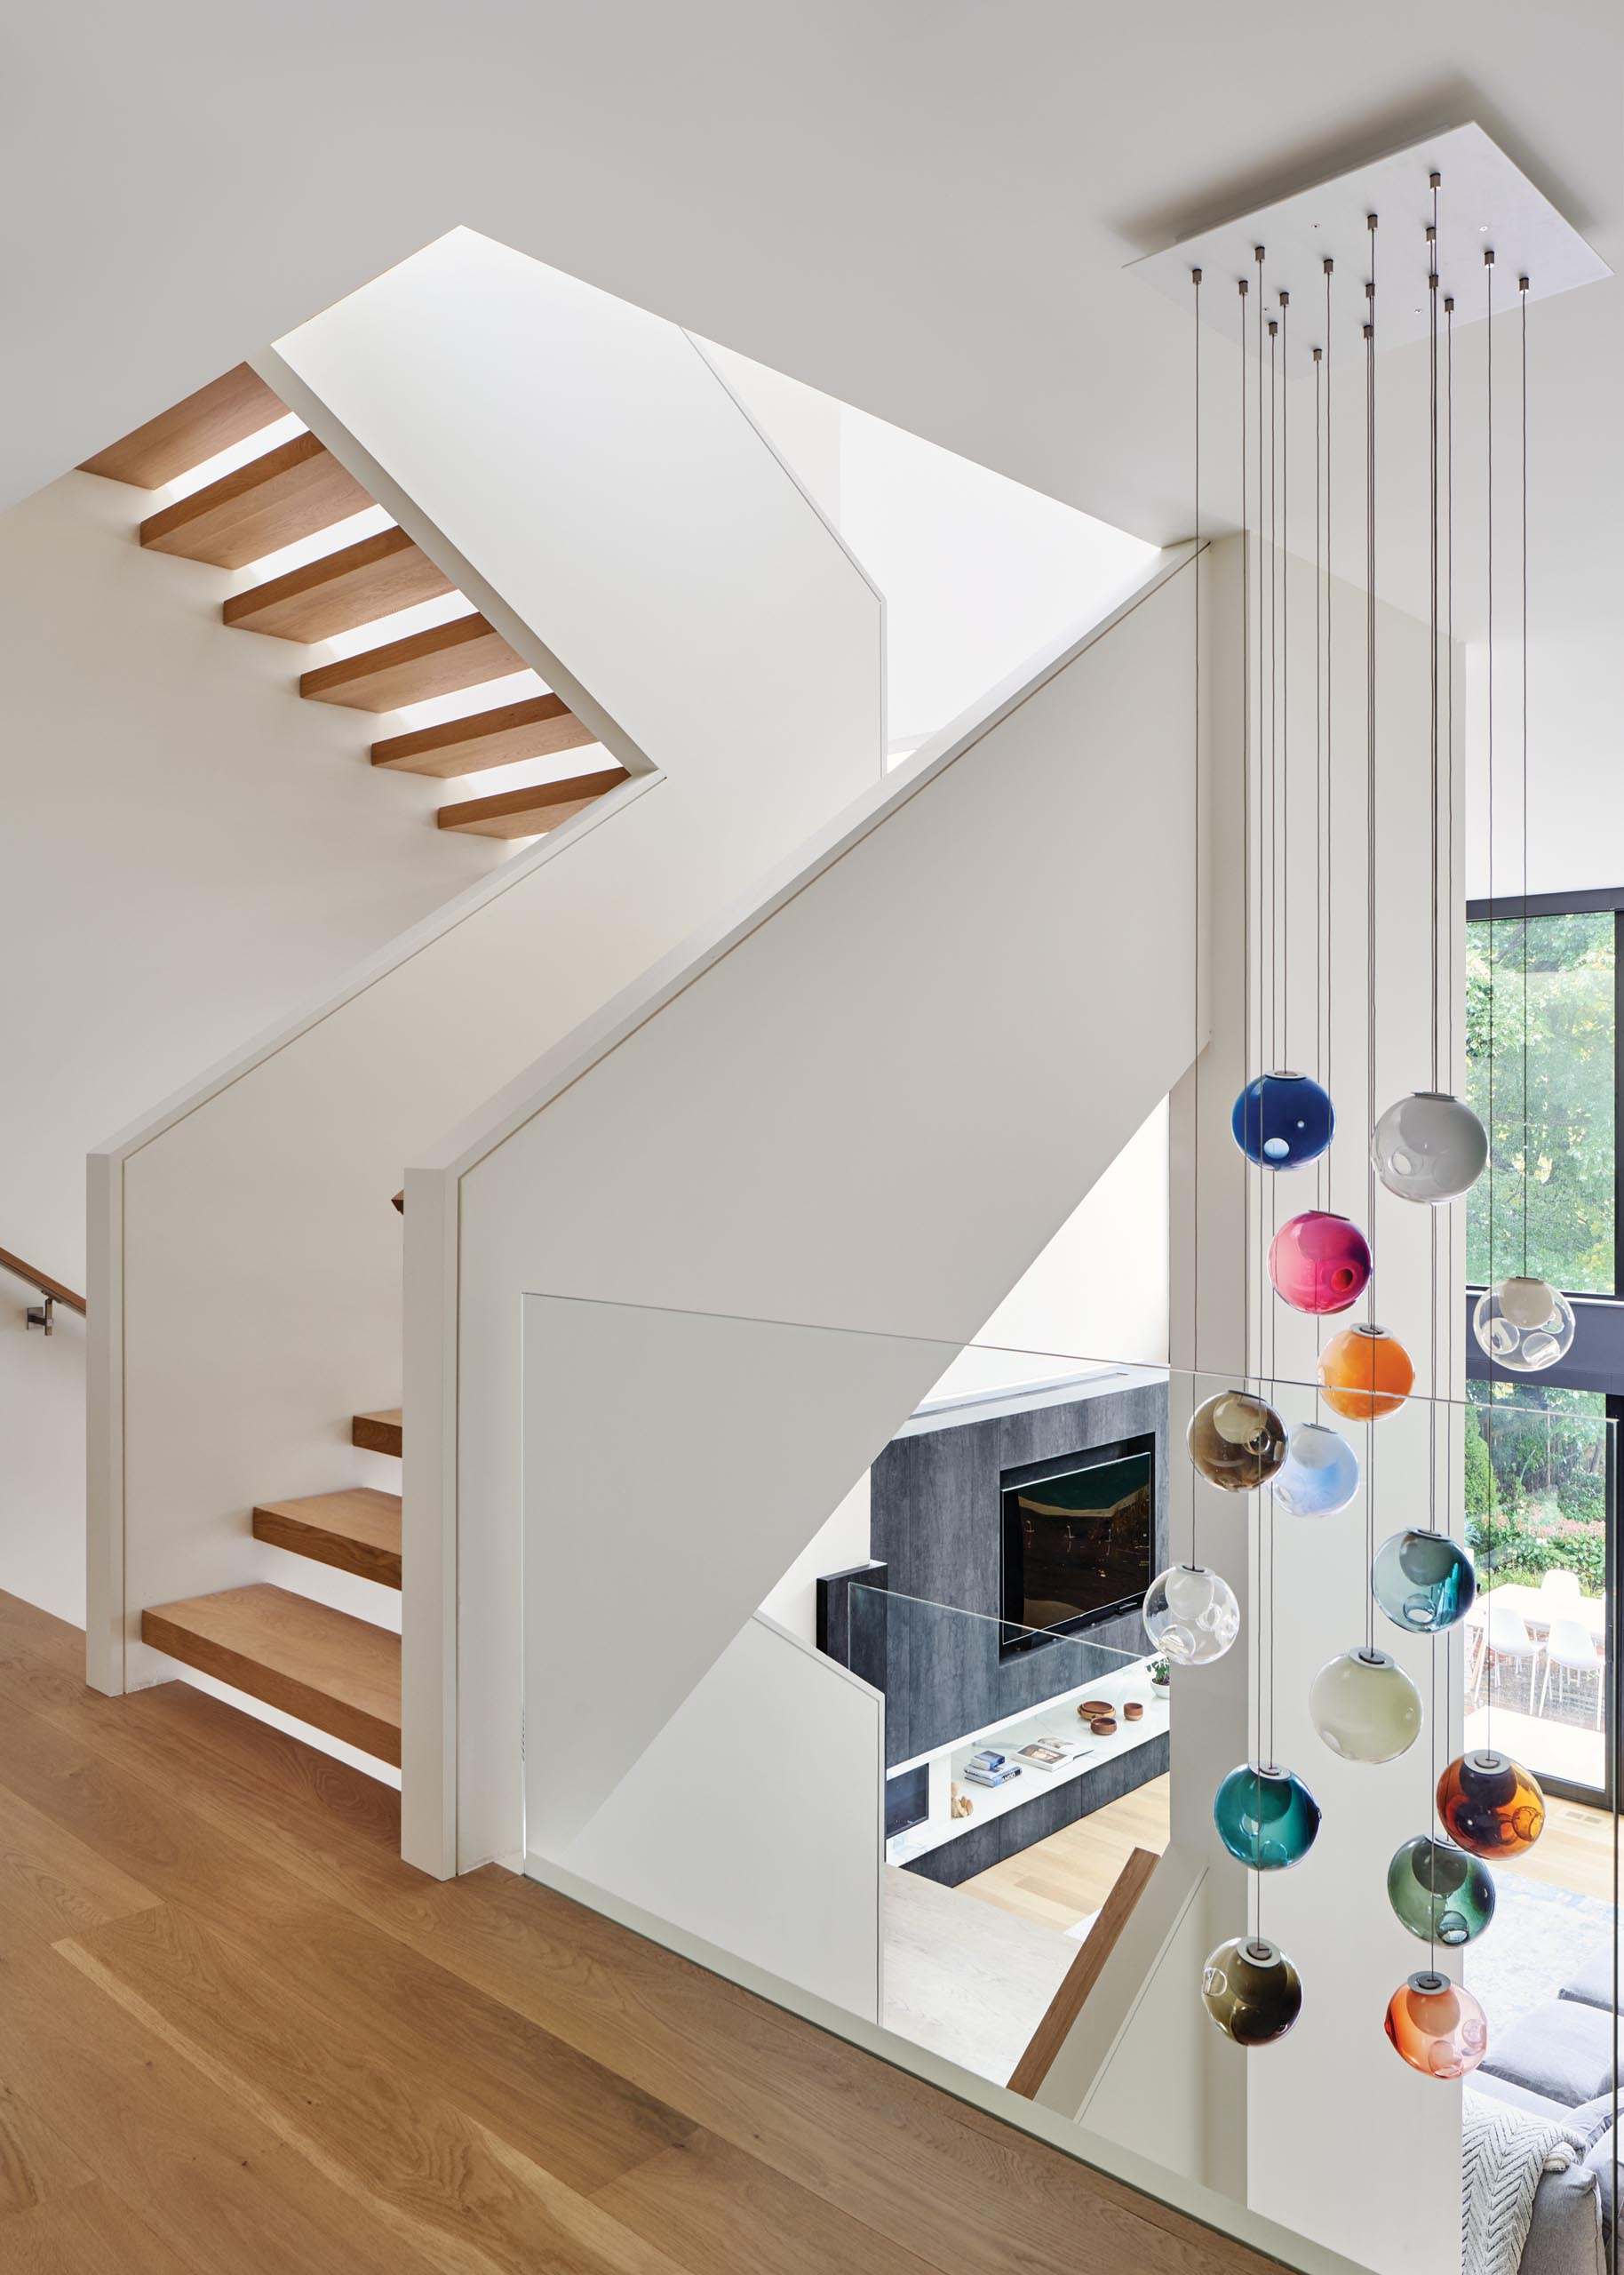 A modern house with an open wood staircase that has glass railings that connect the multiple levels of the home. A colorful accent has been added with the inclusion of suspended Bocci lights.